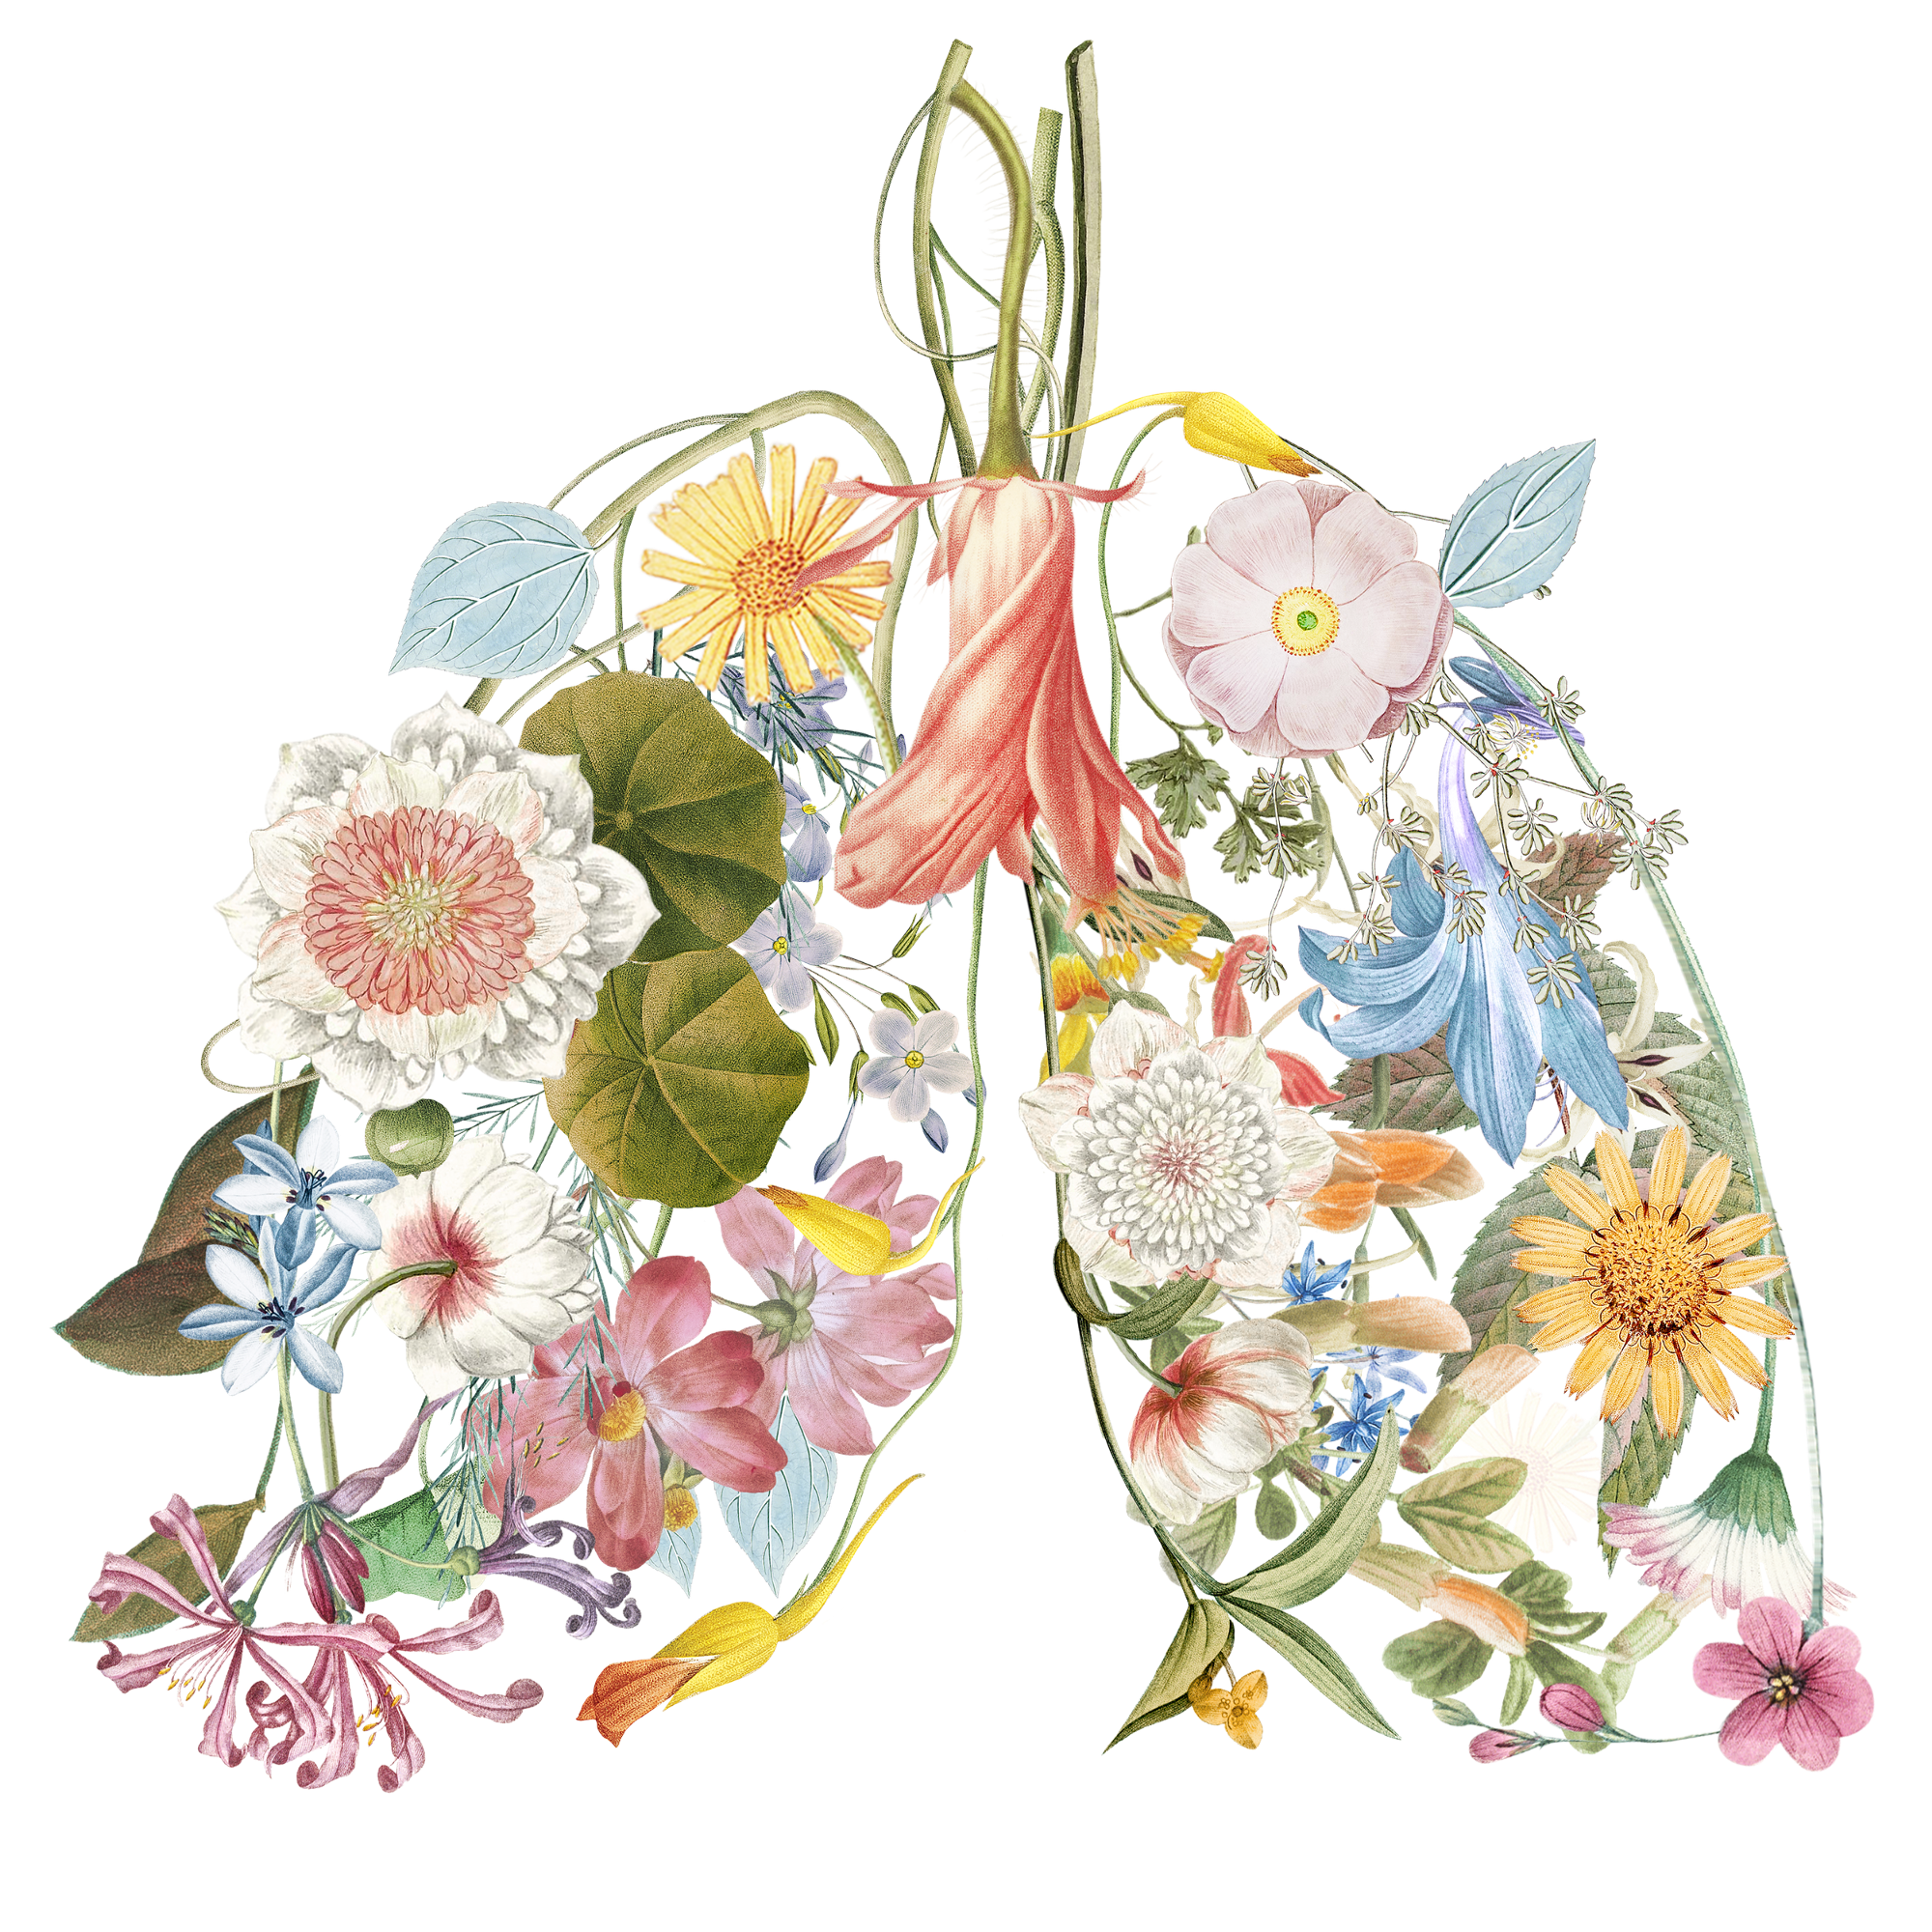 Illustration of many species of flowers arranged on a white background in the shape of human lungs.